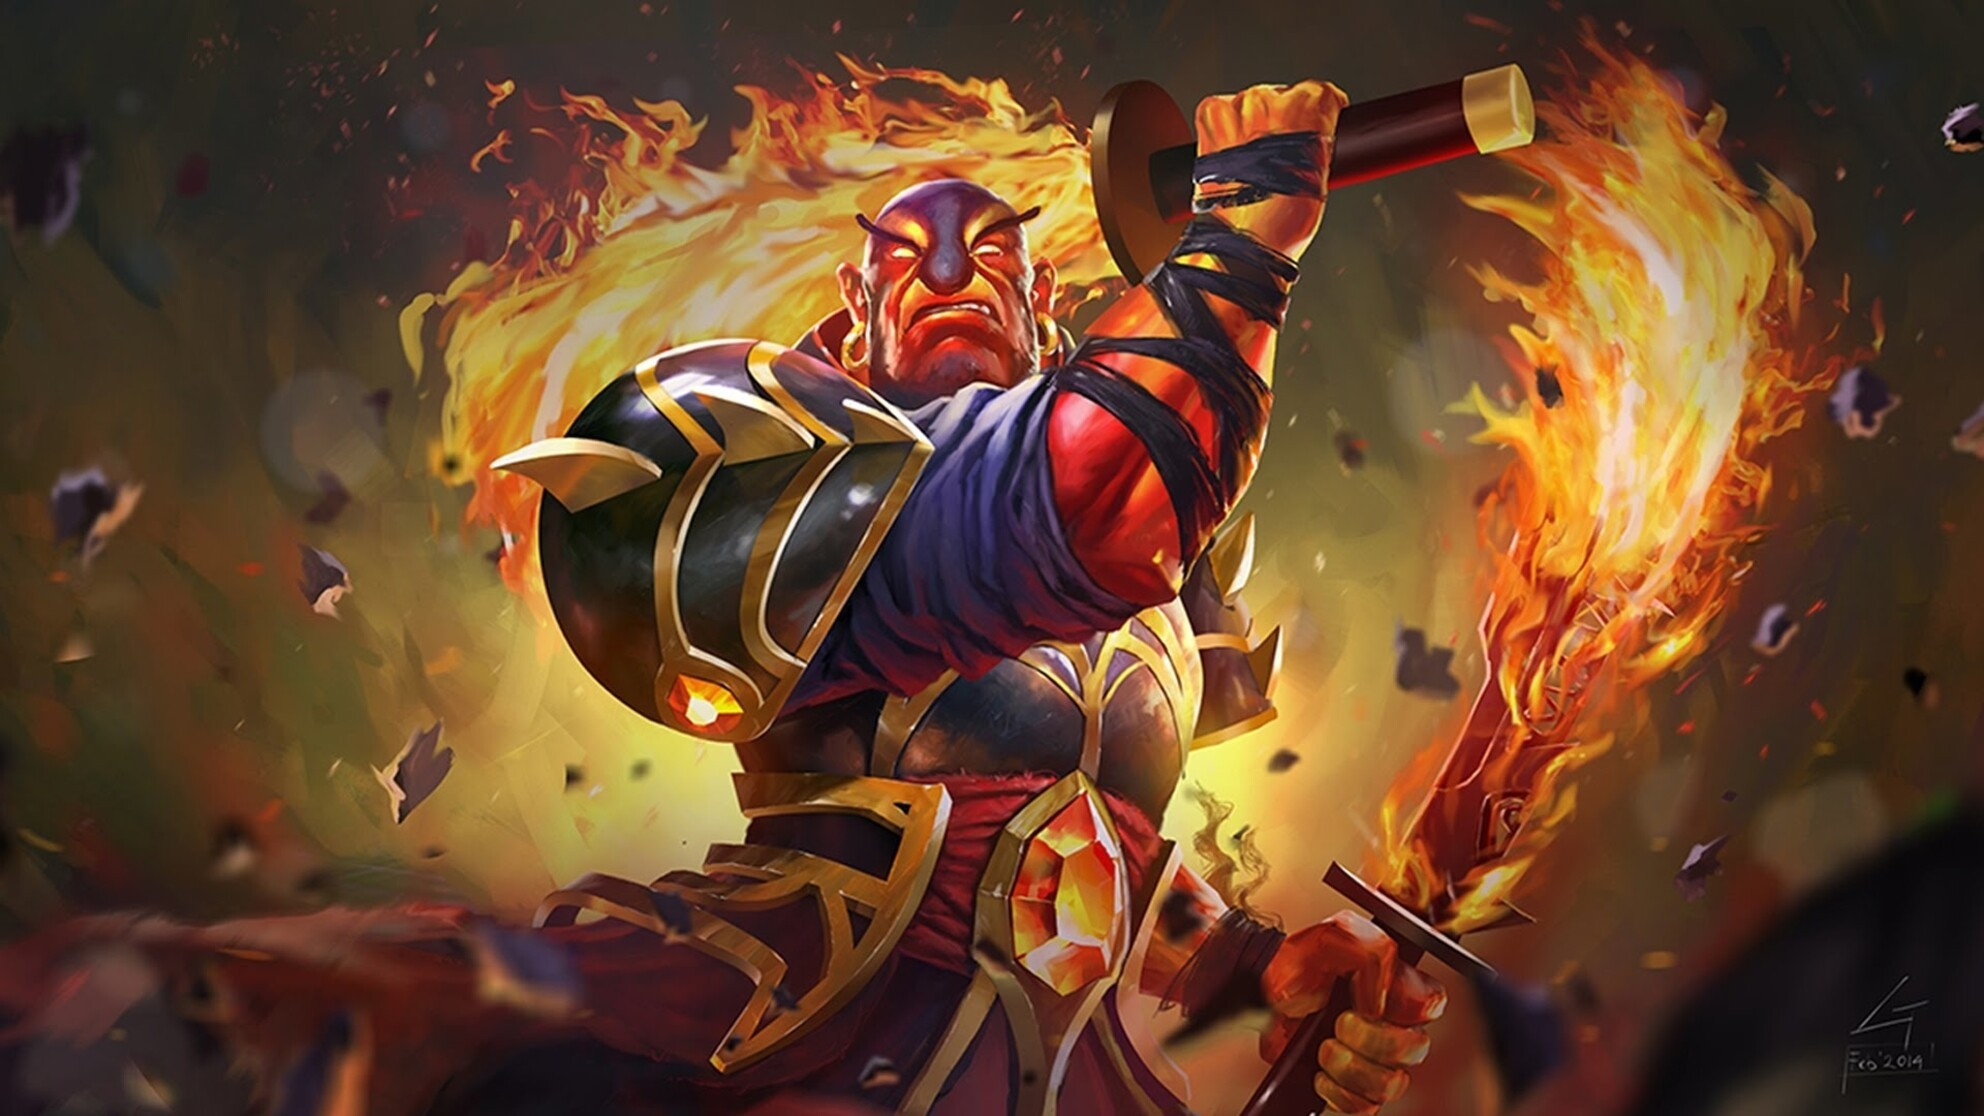 The Heroes in Dota 2 - An Introductory Guide for Ember Spirit